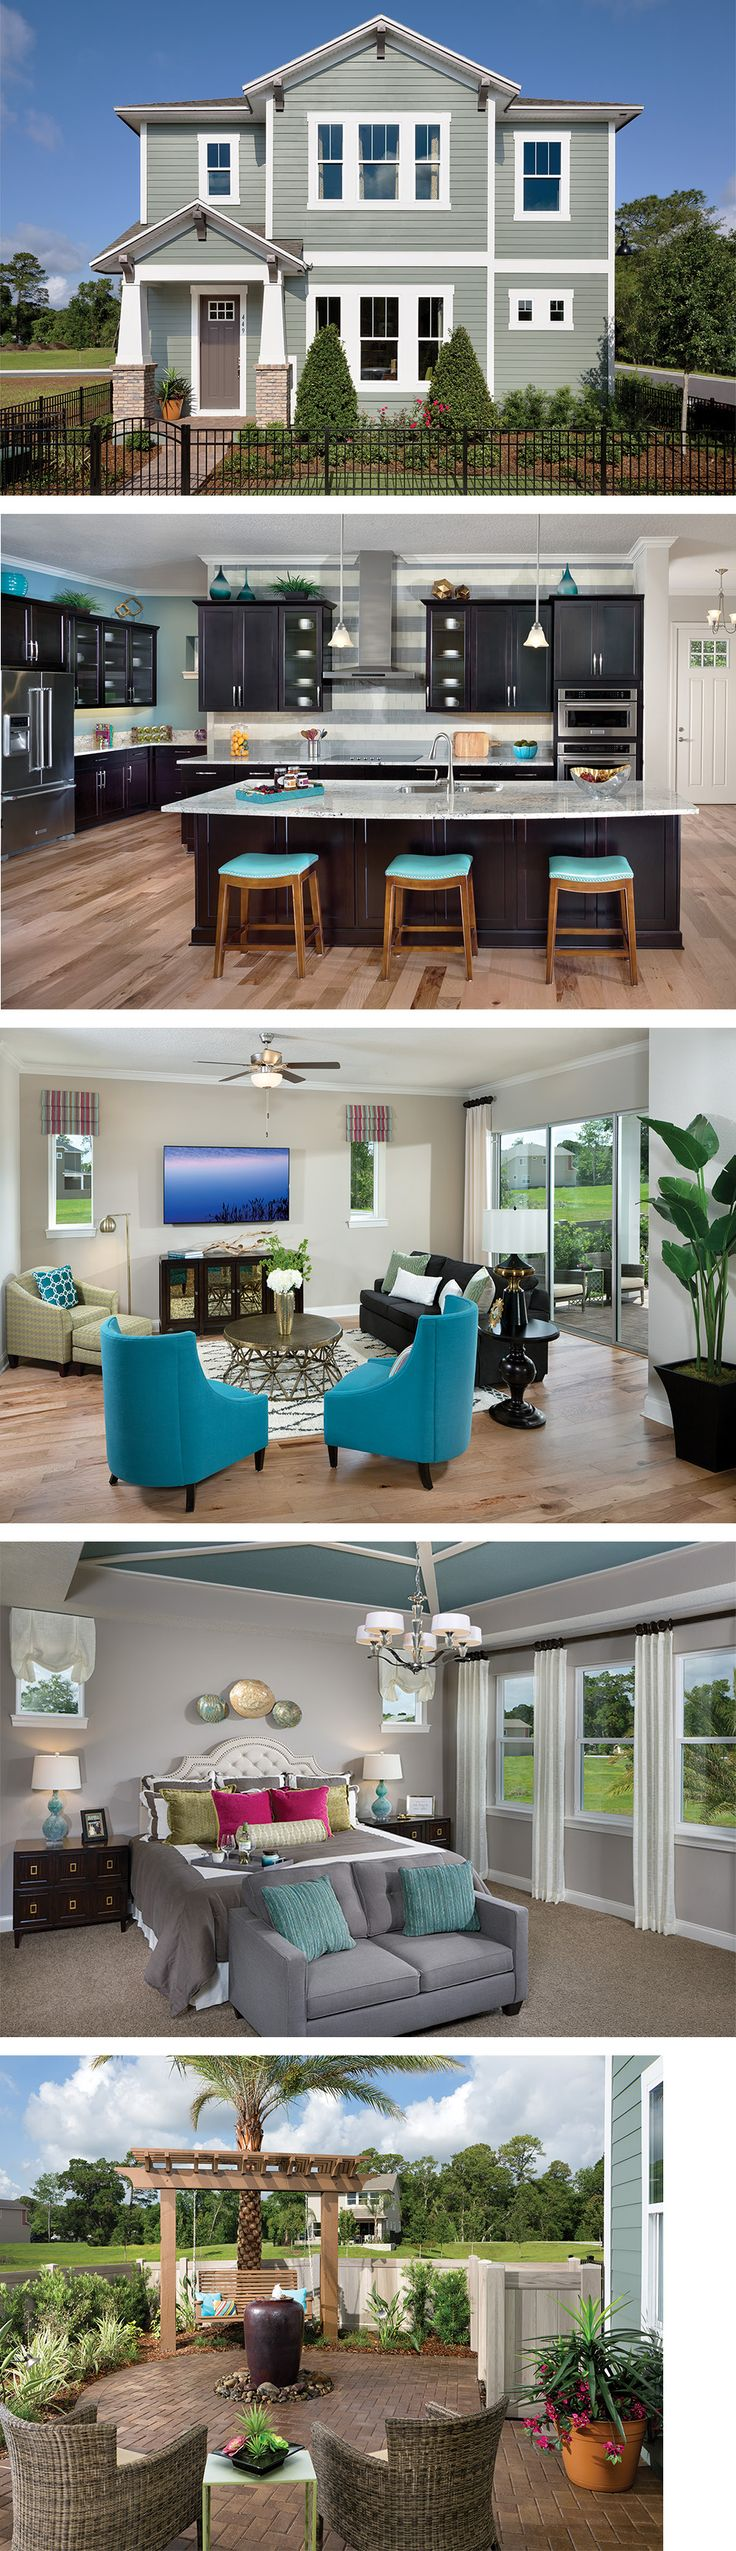 Find Your New Home Preserve Of Oviedo On The Park In Oviedo FL. Youu0027